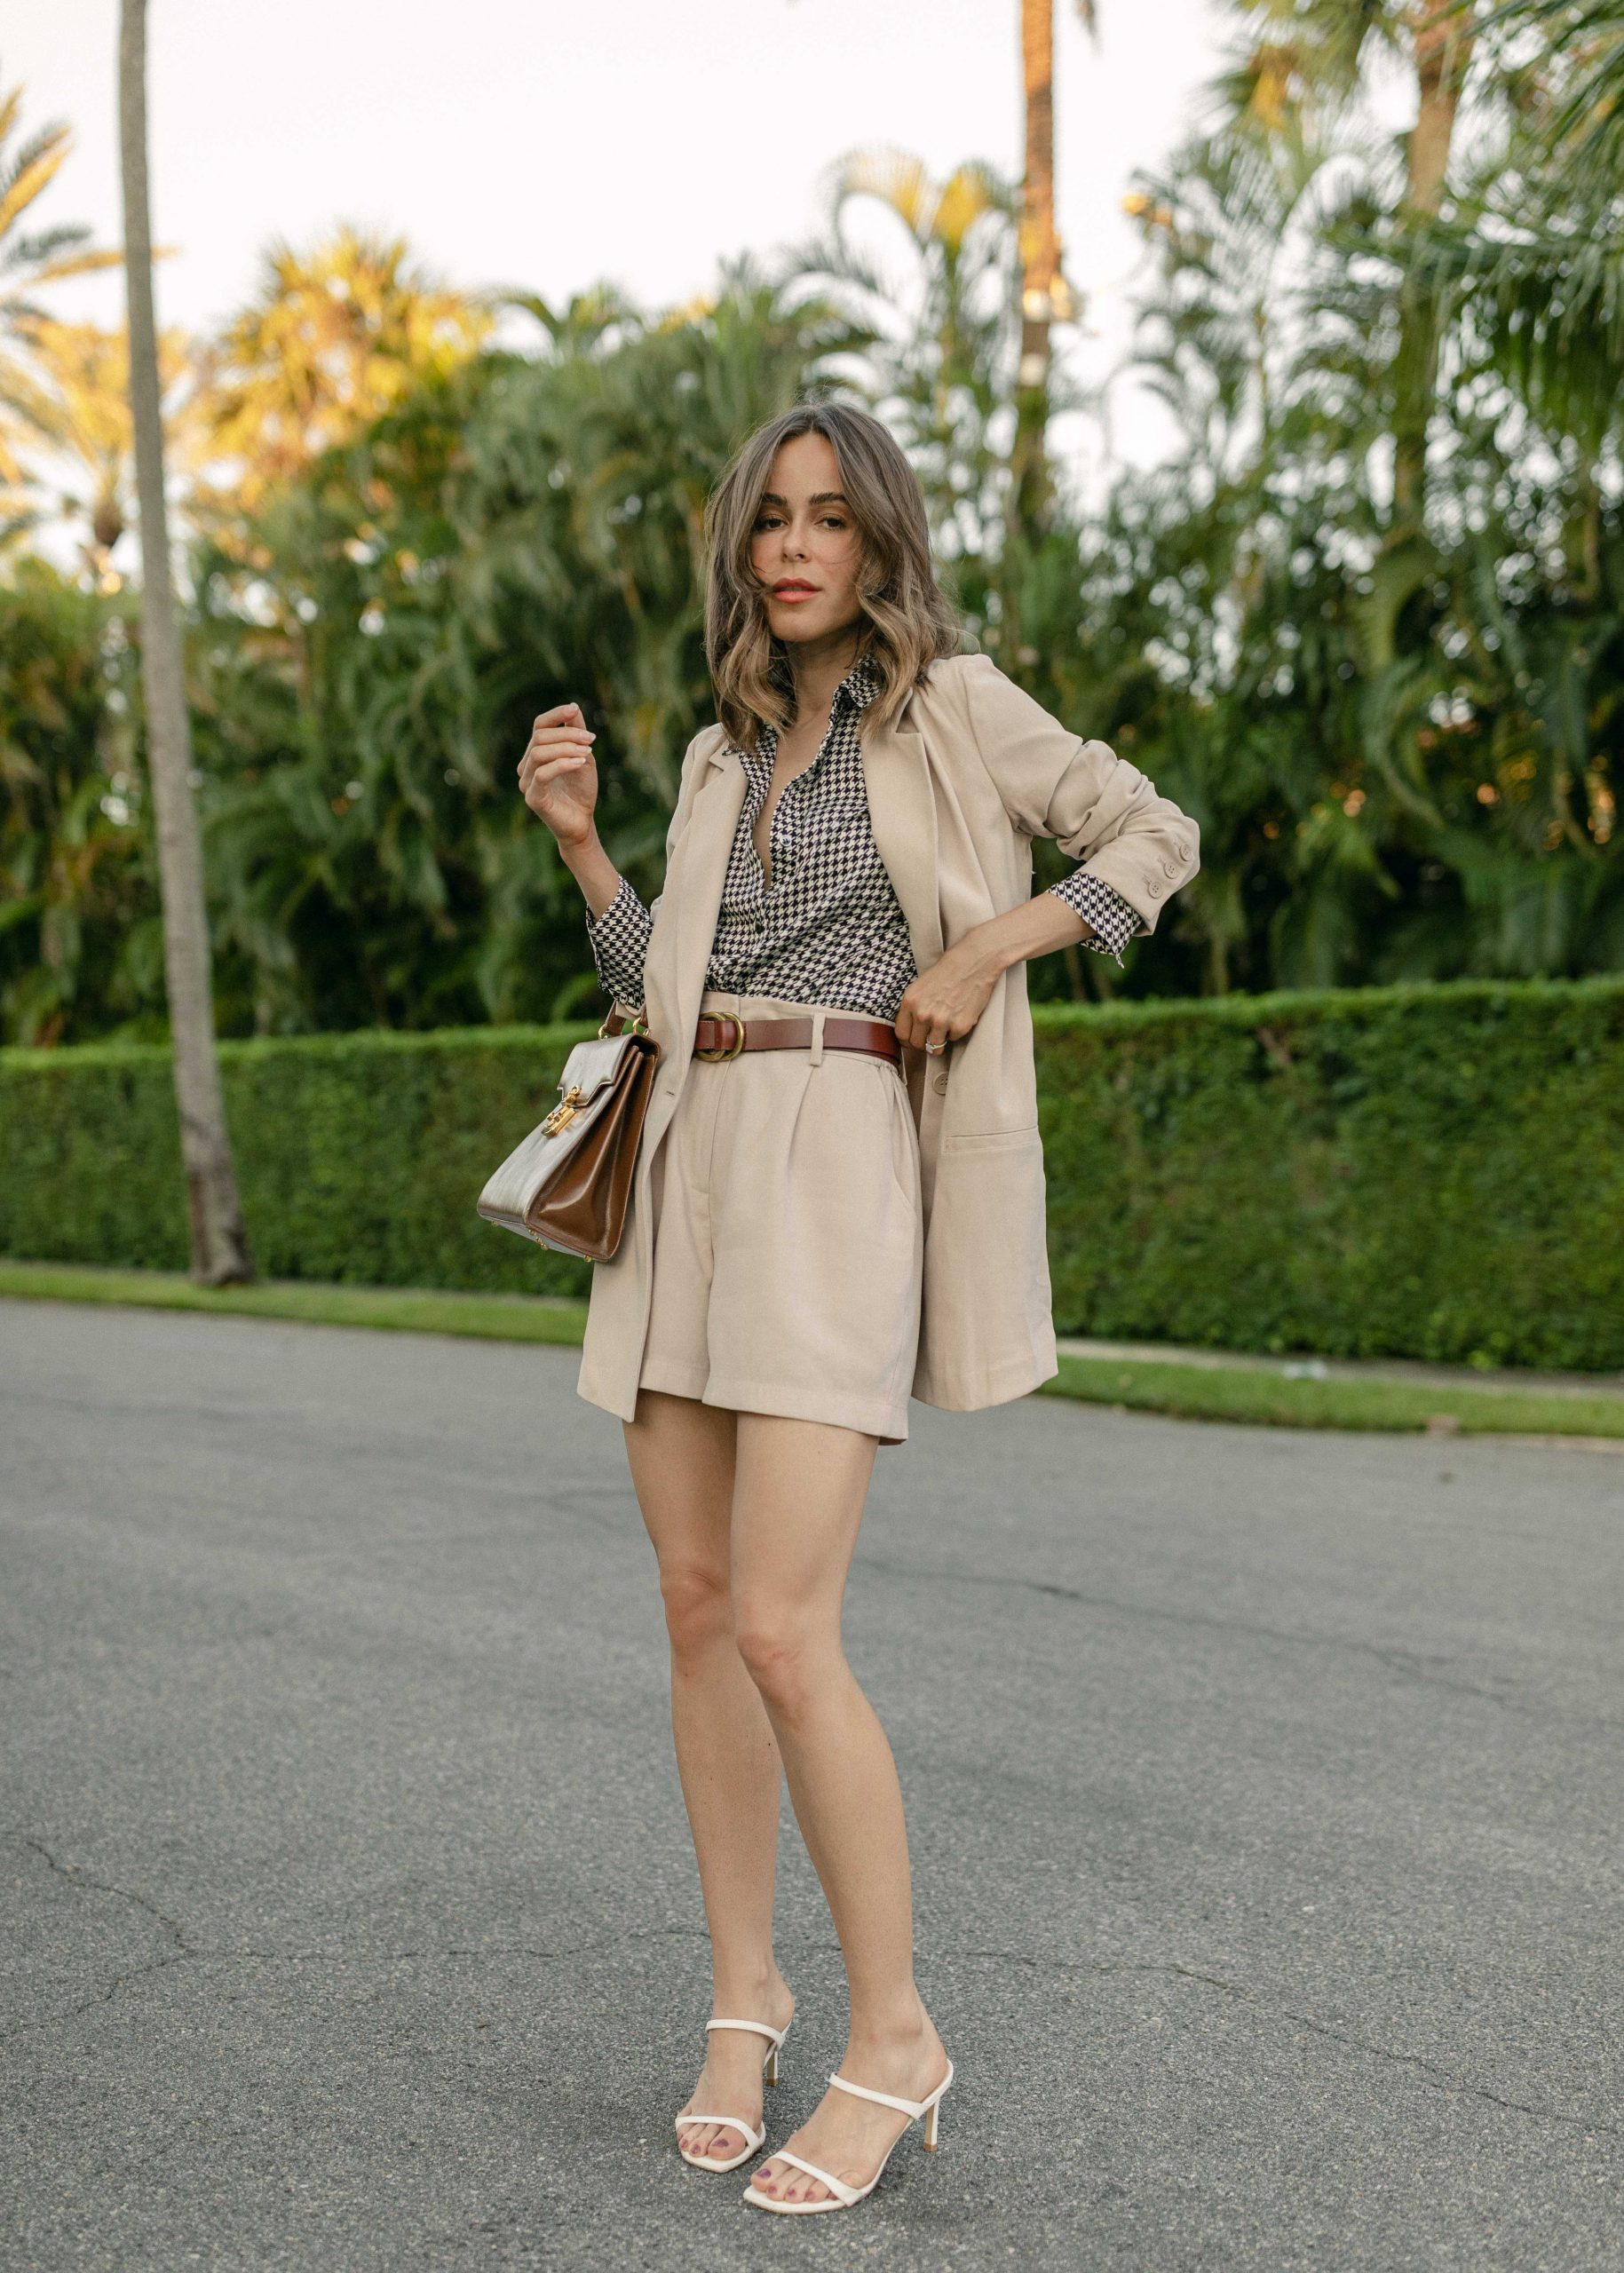 Style Blogger Stephanie Hill features Fall Layering with Nordstrom in Florida on The Style Bungalow